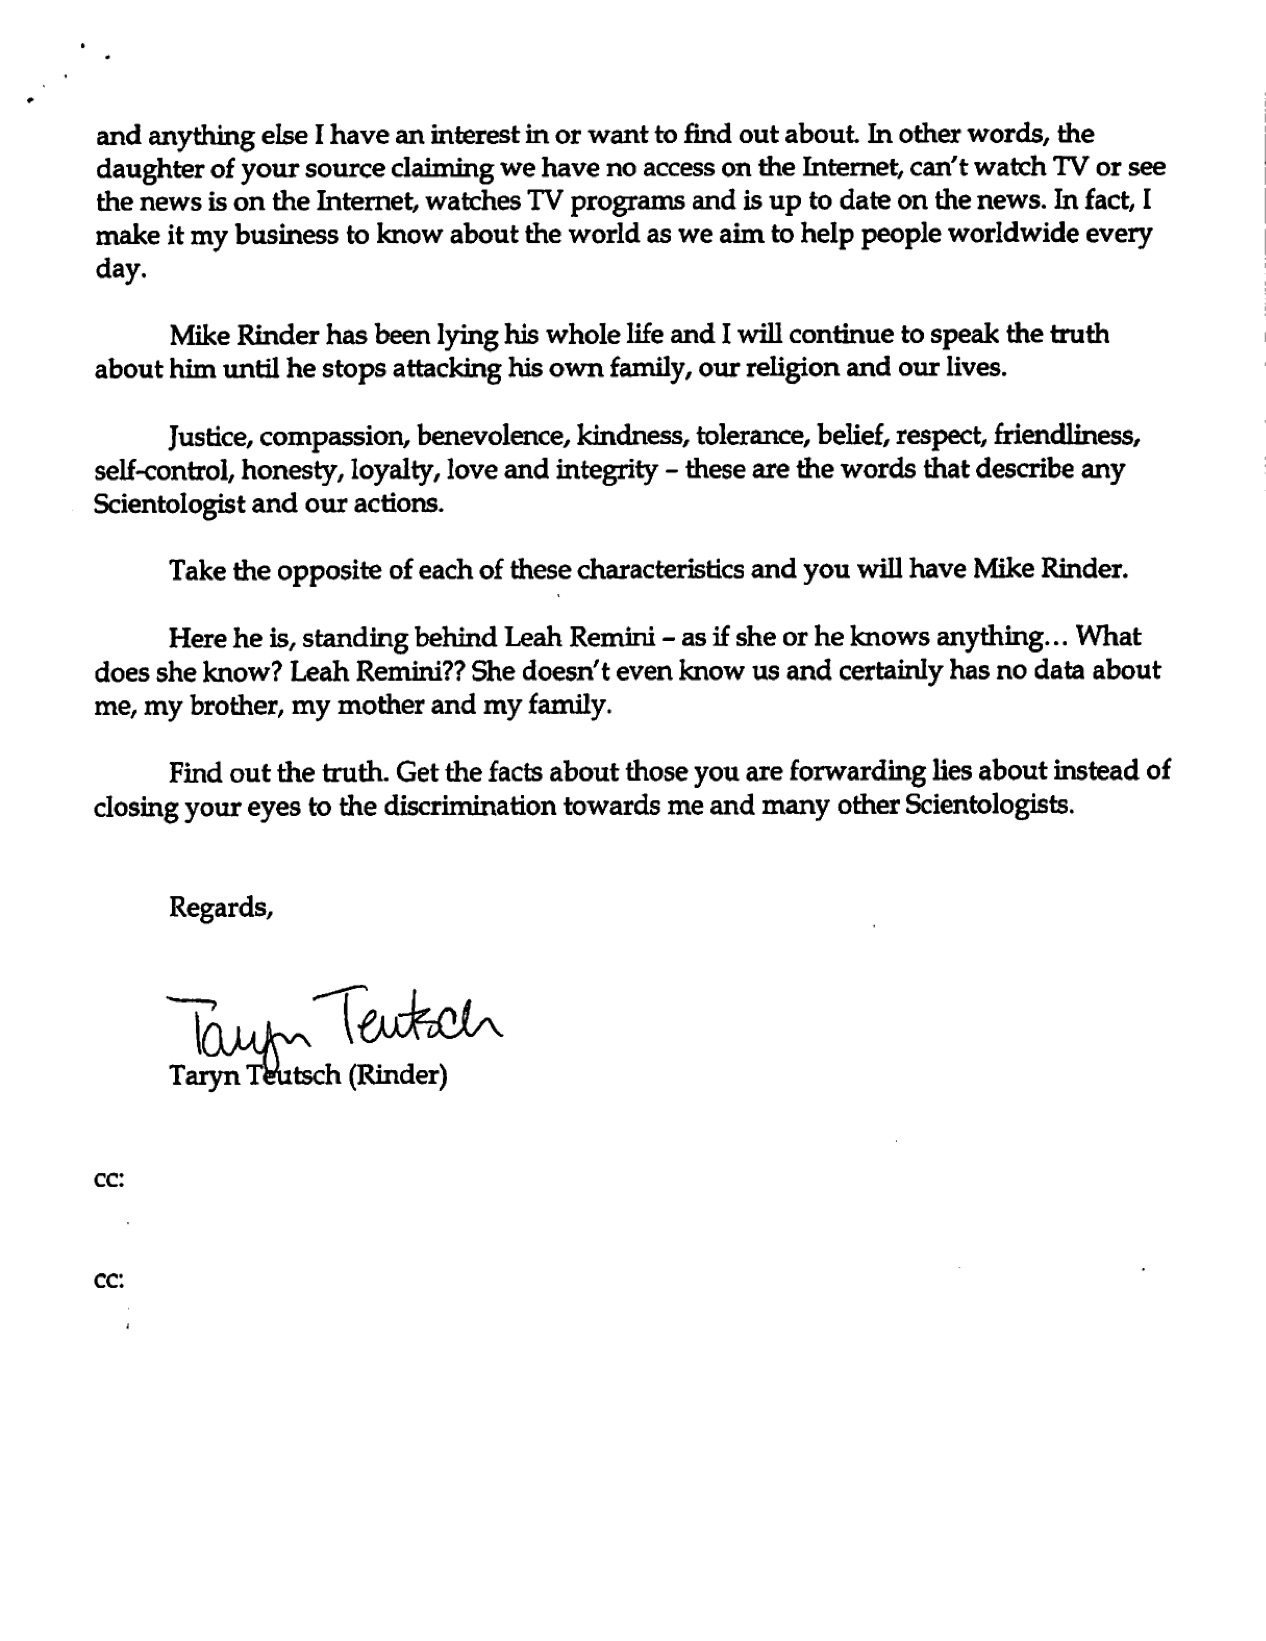 Mike Rinder Letter 5, Page 1